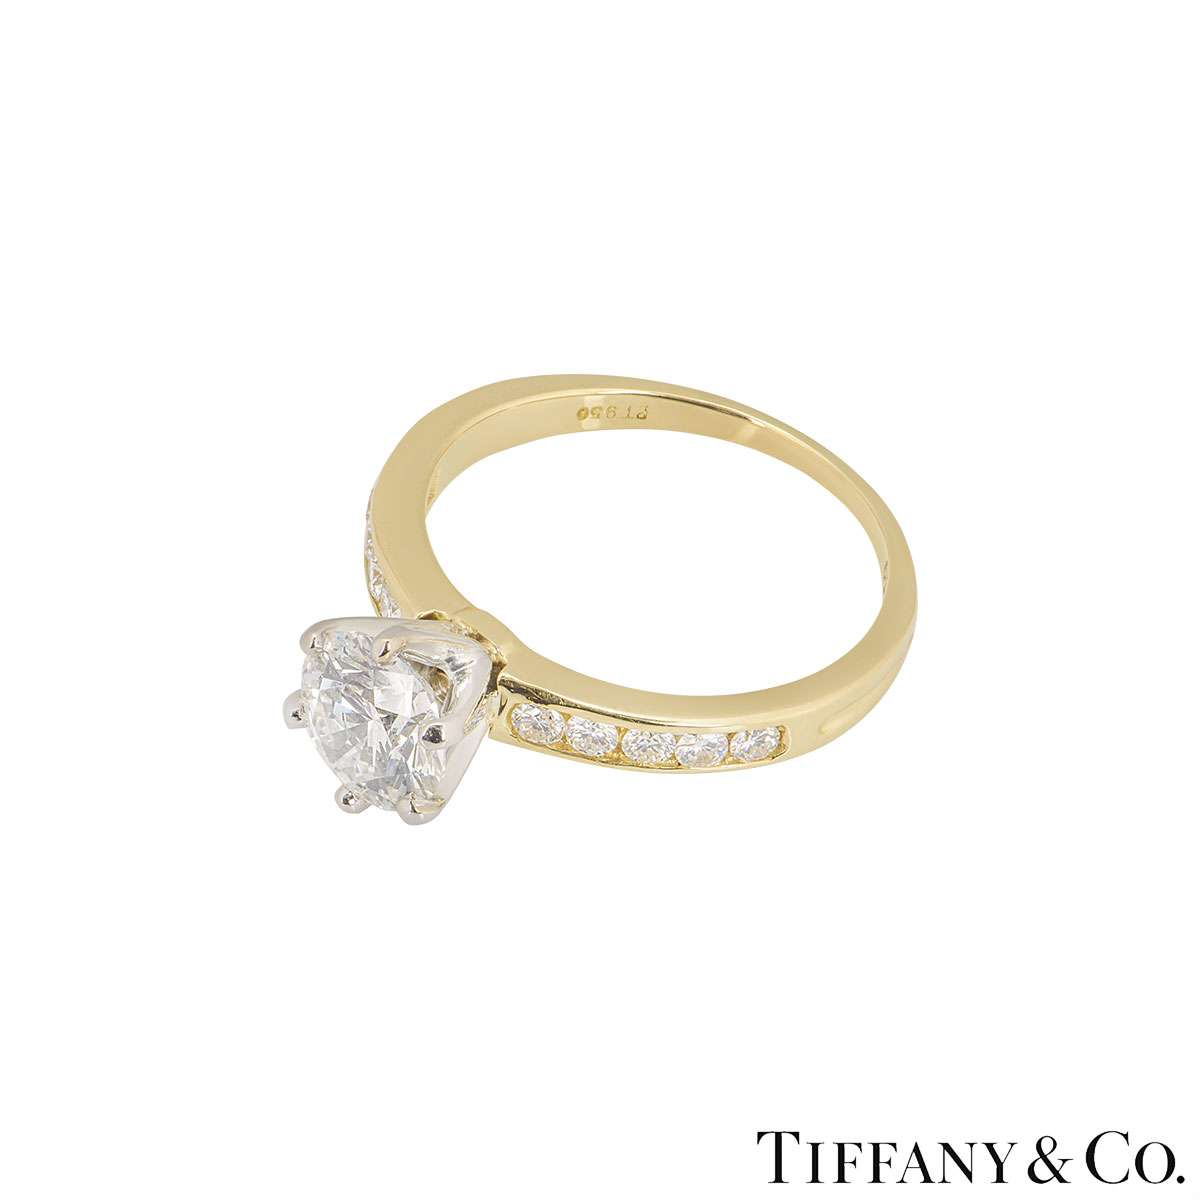 Tiffany & Co. Yellow Gold Diamond Ring 1.08ct H/VS1